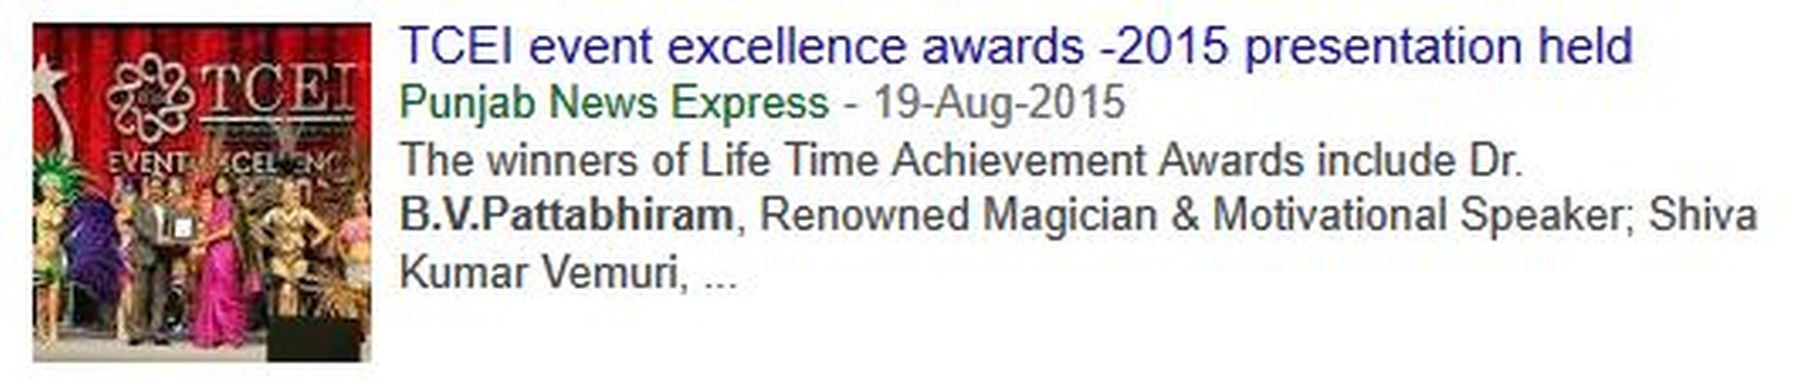 2015-08-19 - TCEI event excellence awards -2015 presentation held - Punjab News Express